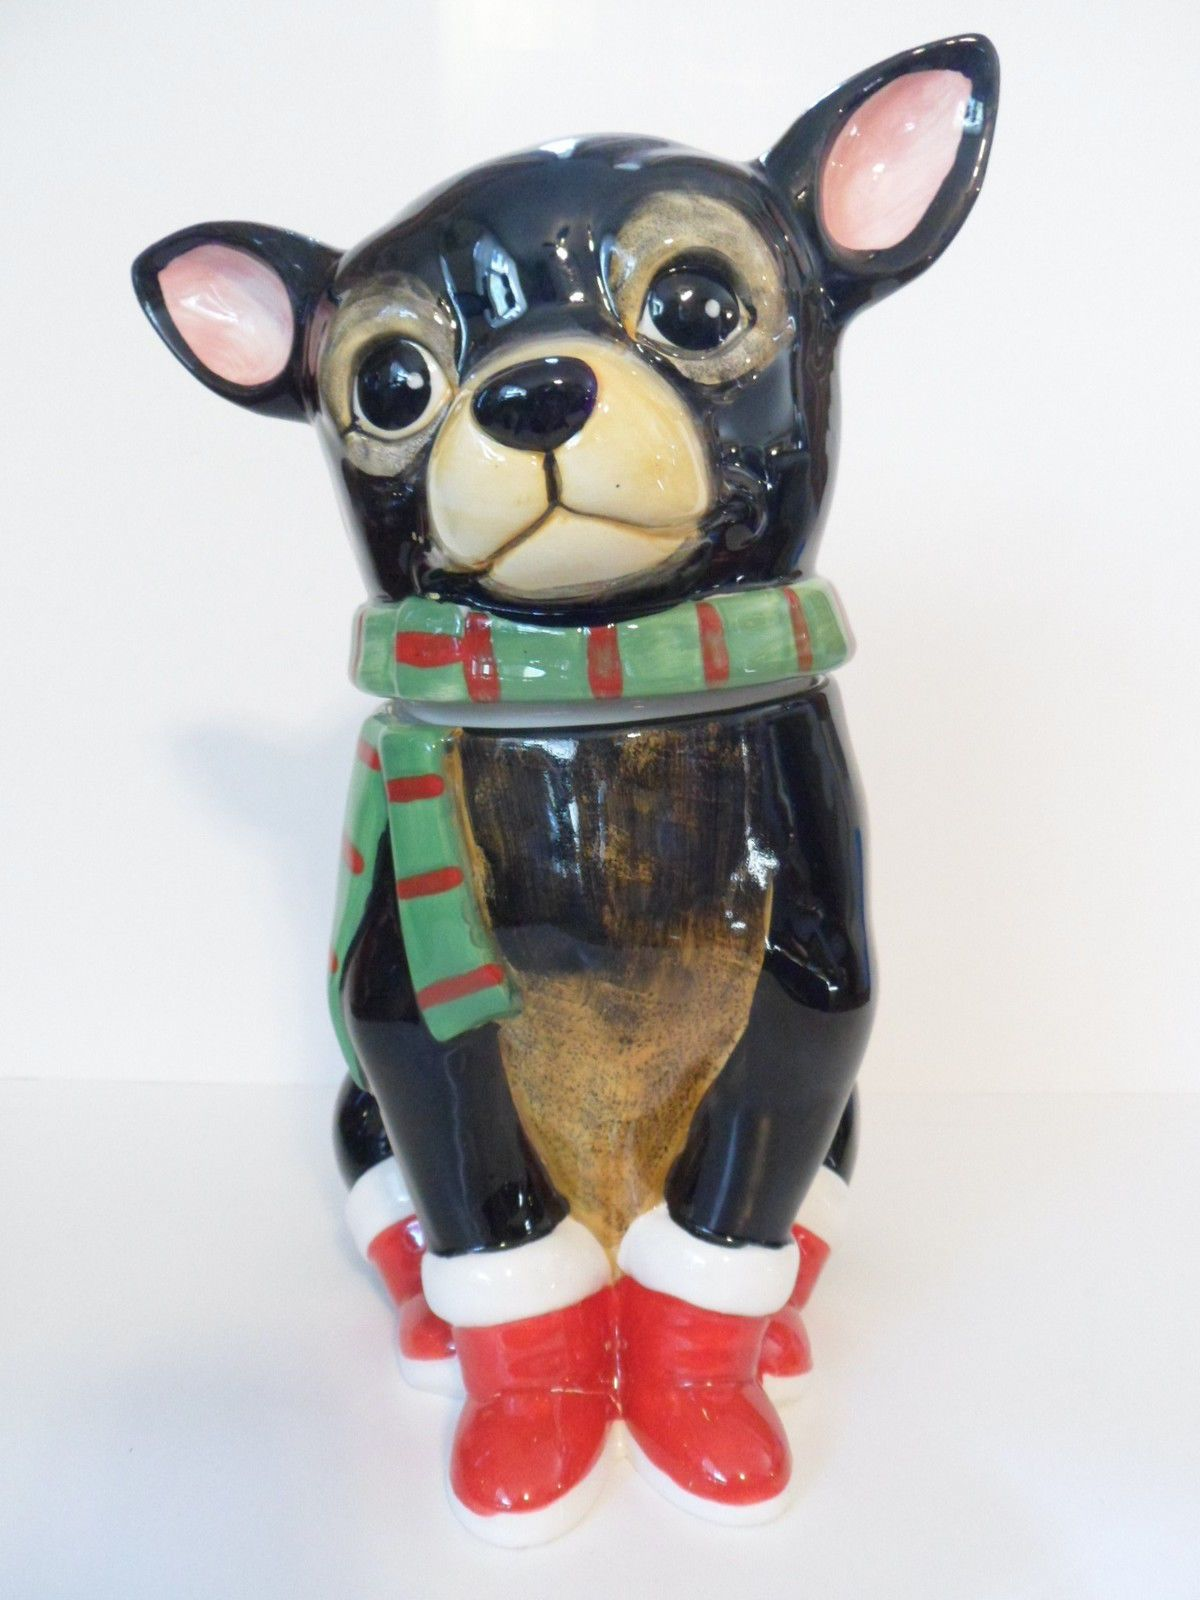 Chihuahua Cookie Jar Simple Starbucks San Francisco 2015 Ceramic Holiday Christmas Ornament Design Inspiration